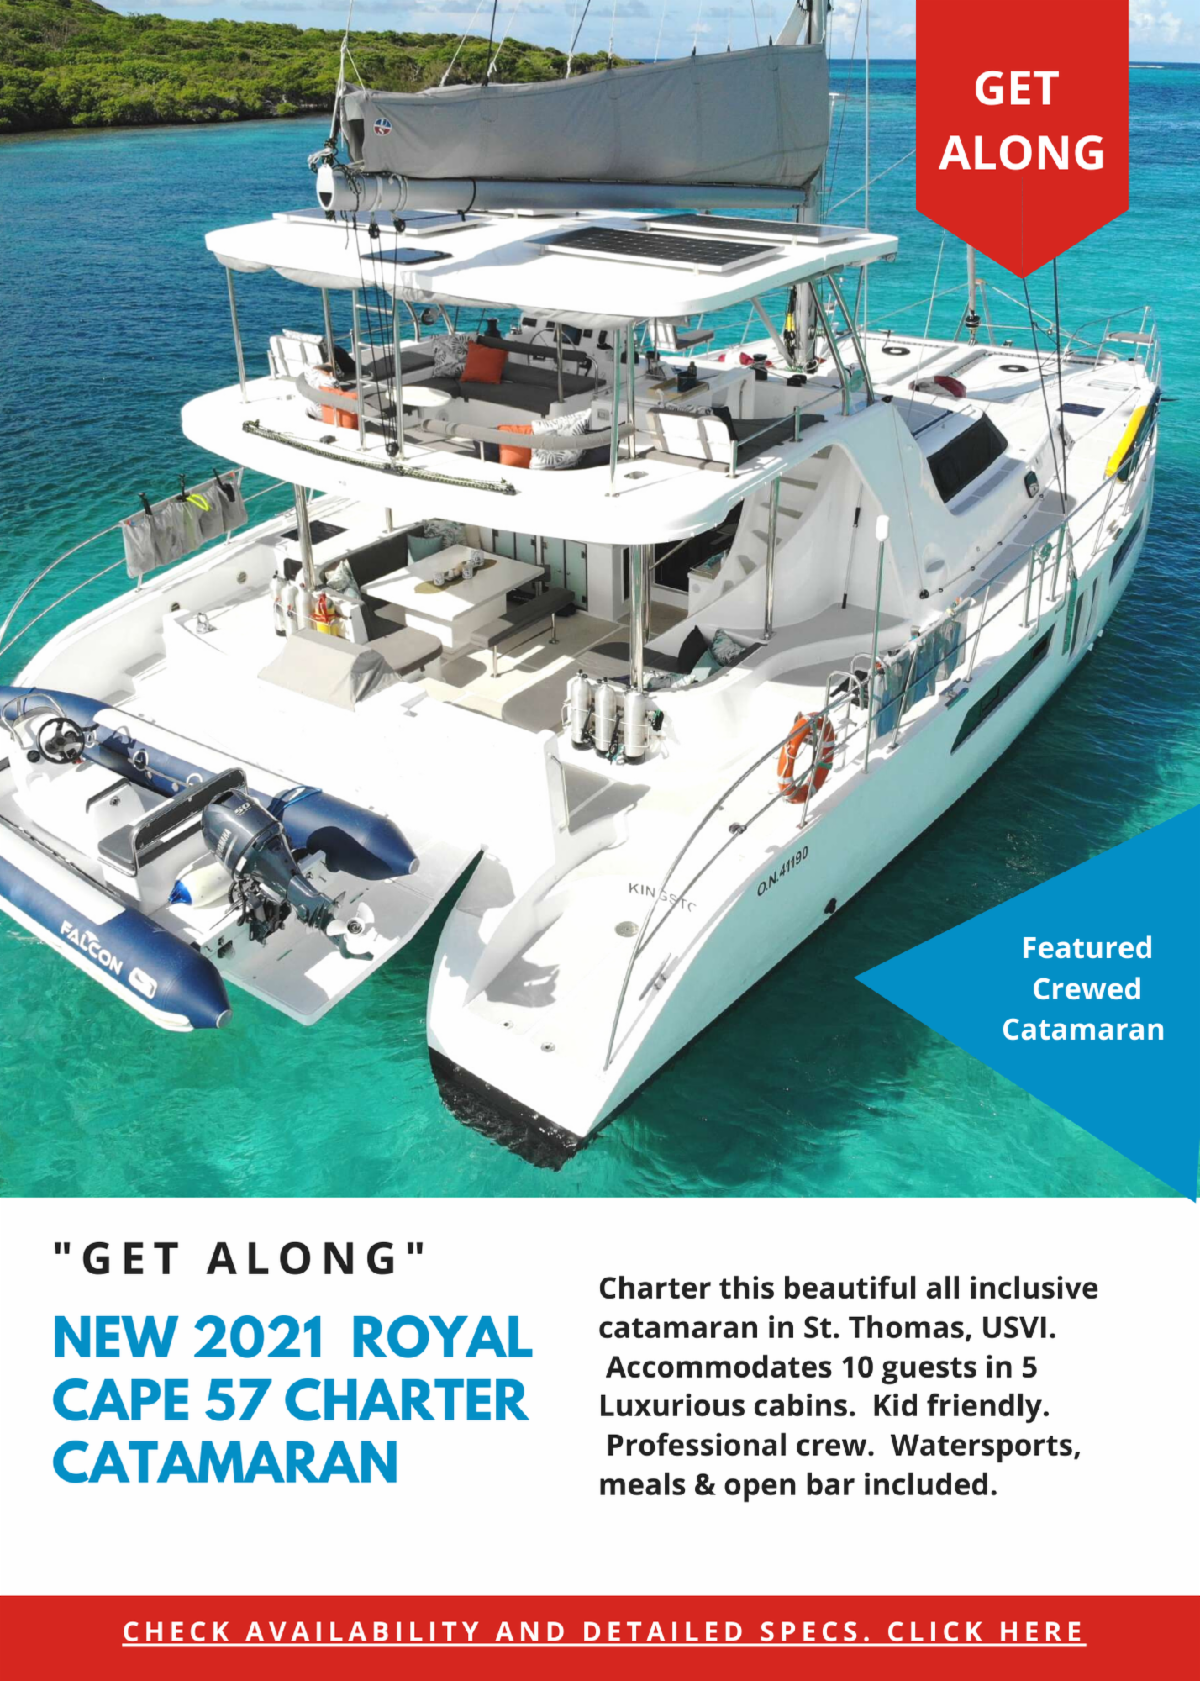 New 2021 Royal Cape 57 For Ten Guests in St. Thomas, USVI